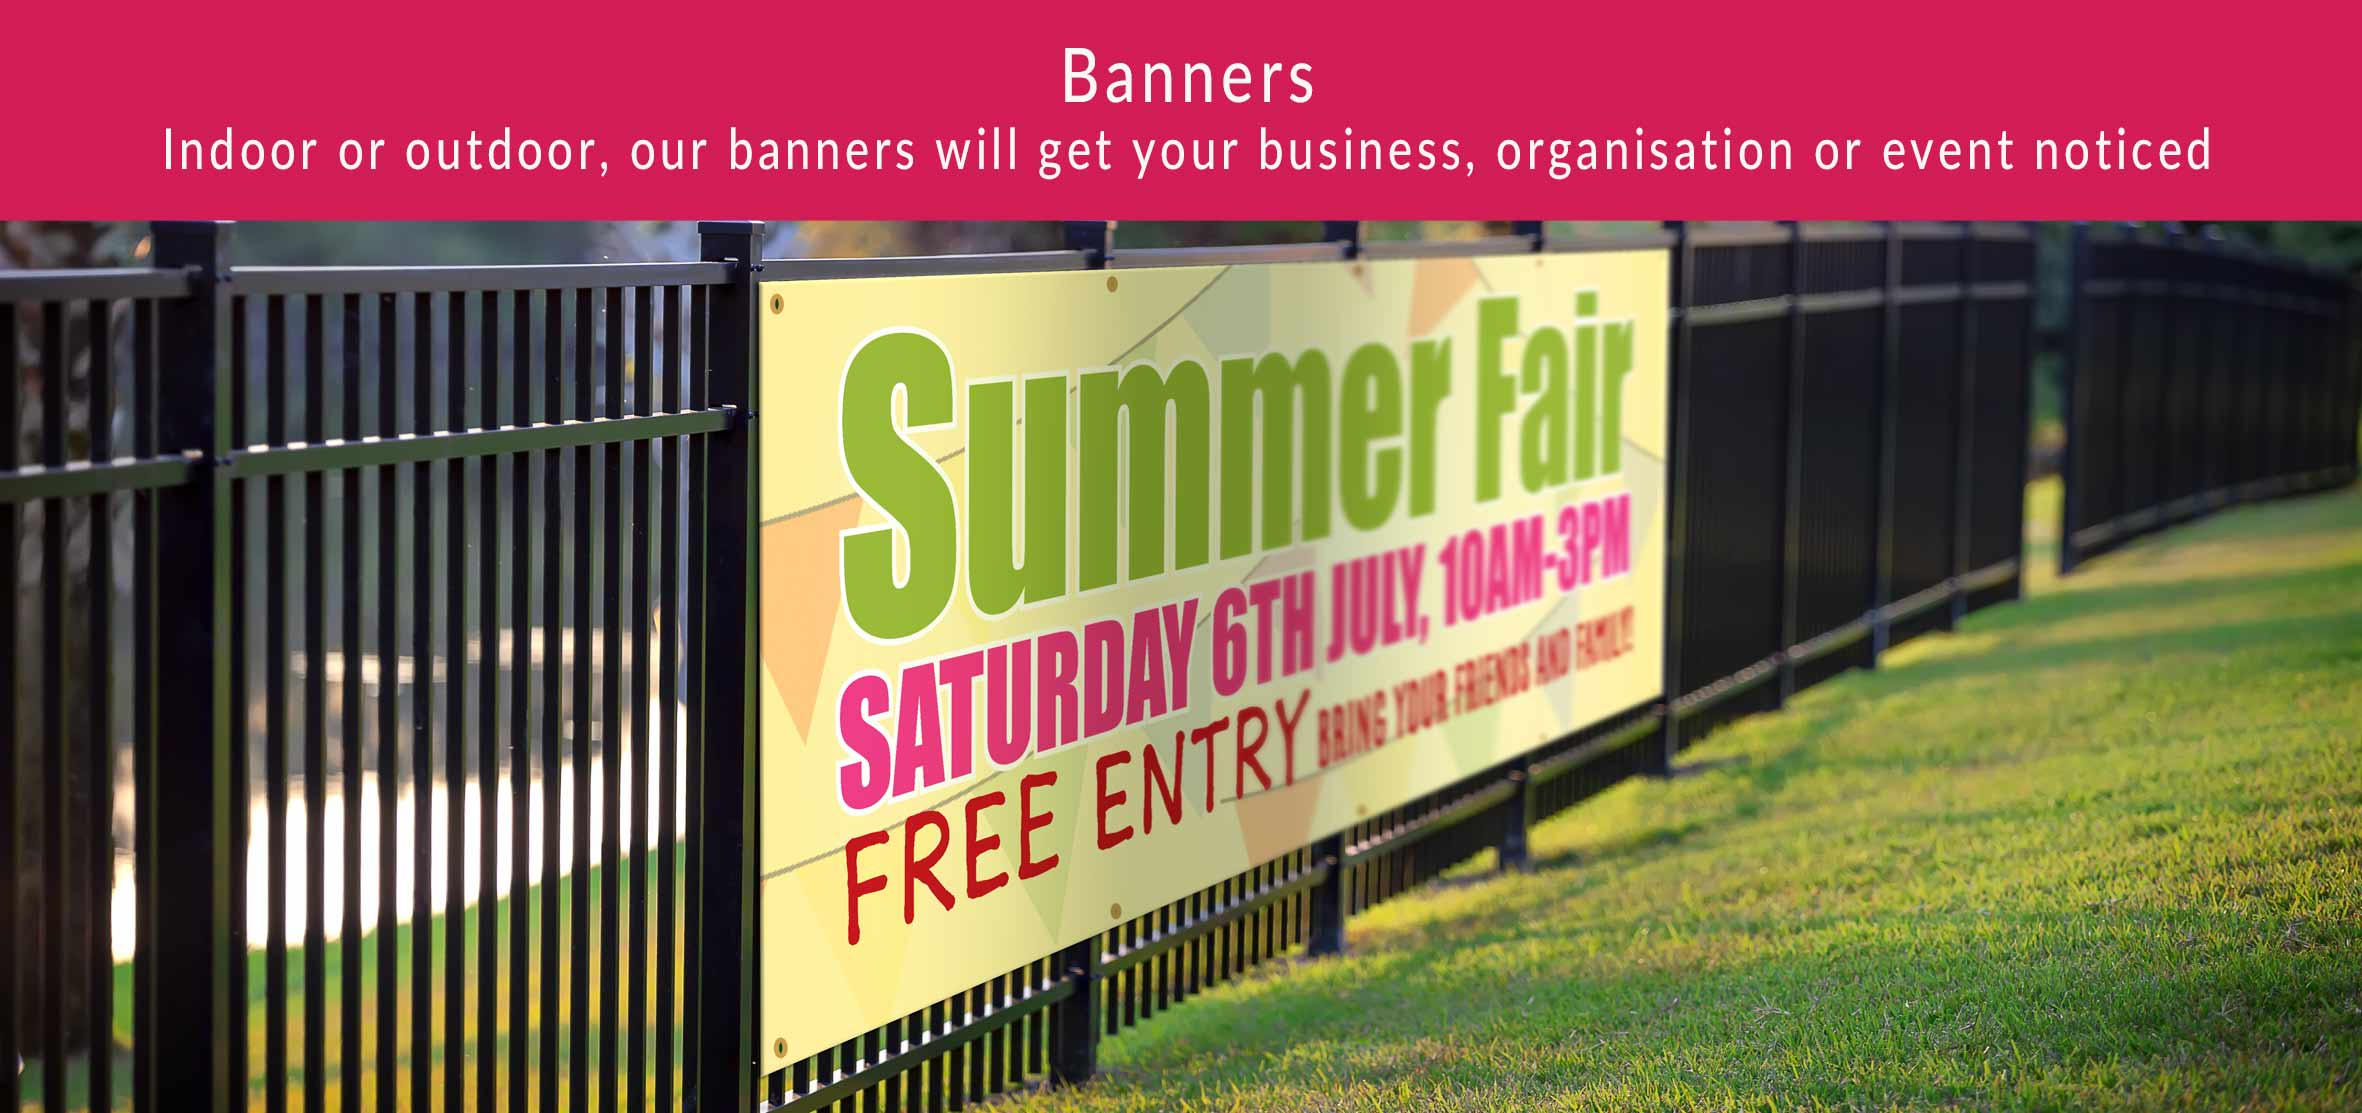 Indoor or outdoor, pur banners will get your business, organisation or event noticed